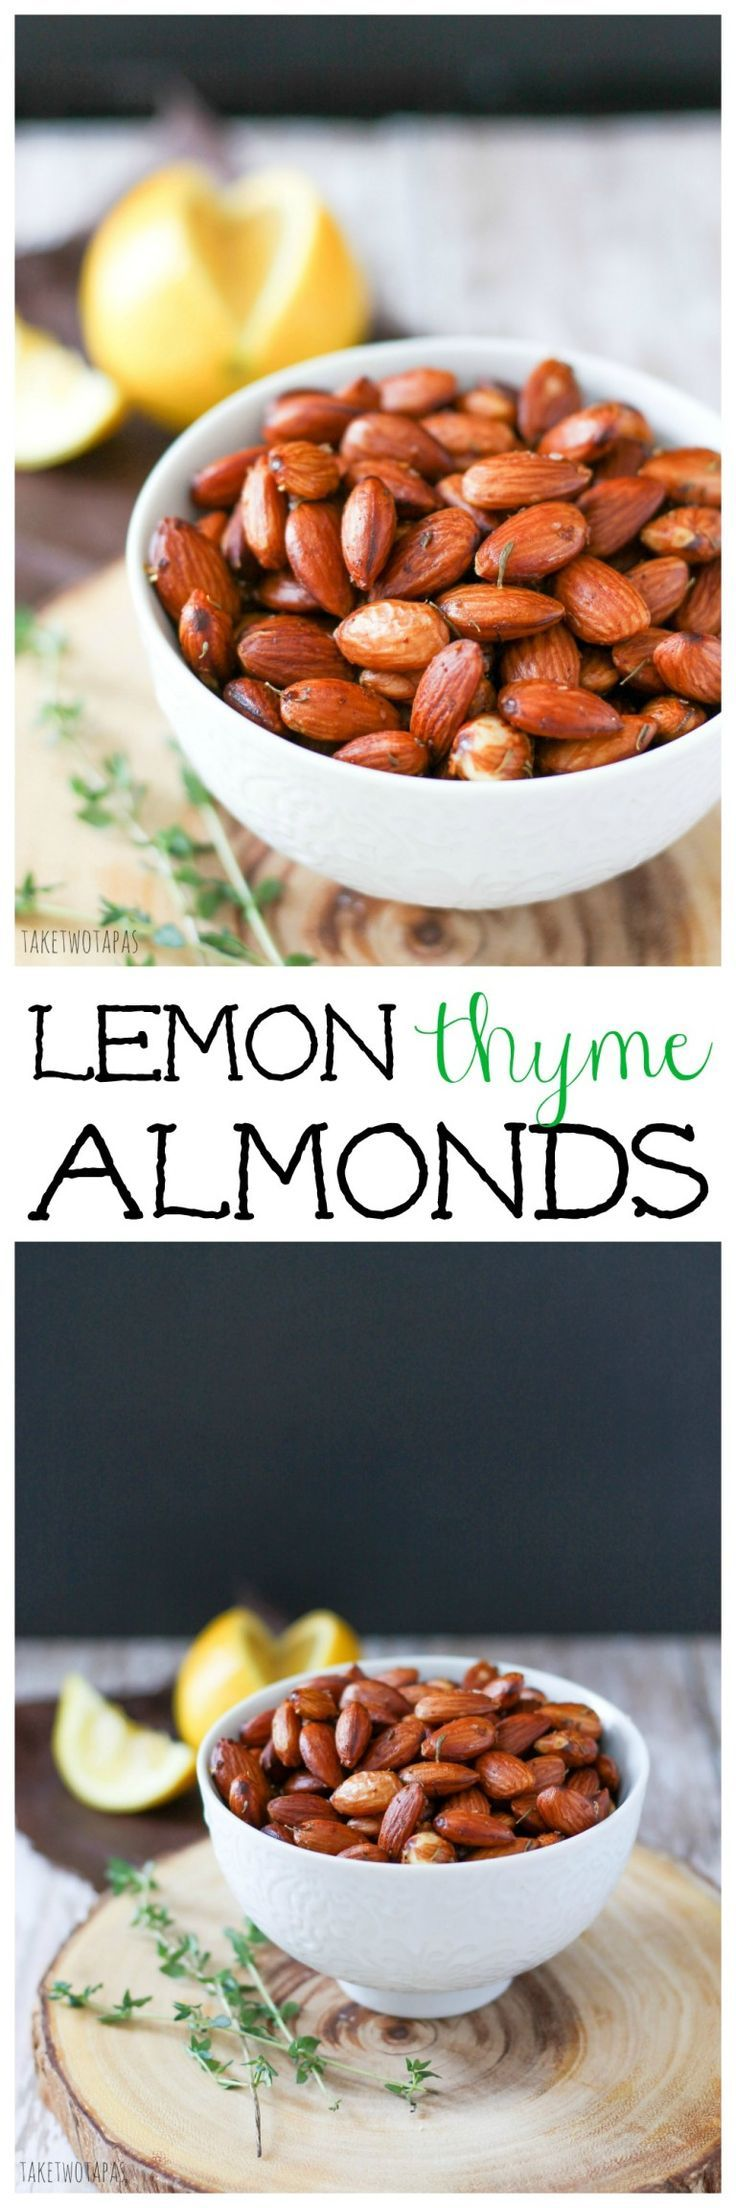 Need a healthy snack? I Toasted almonds are perfect! They are nutty and buttery. The bright flavor lemon cuts through the richness and the fresh thyme add some floral notes. These Lemon Thyme almonds are a great snack to keep you full between mealtimes! L